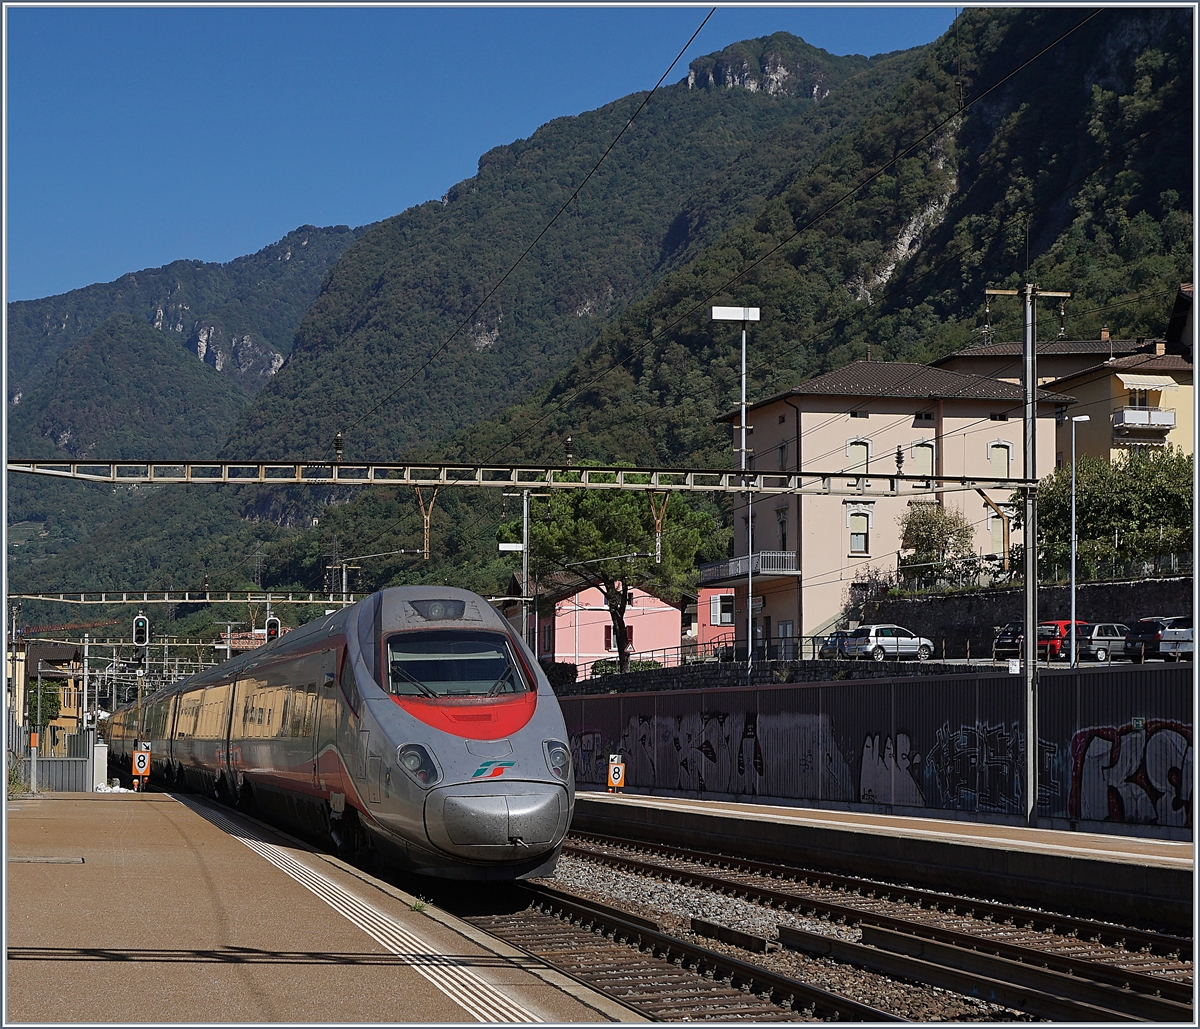 A FS Trenitaila ETR 610 on the way to Zürich in Capolago Riva San Vitale-